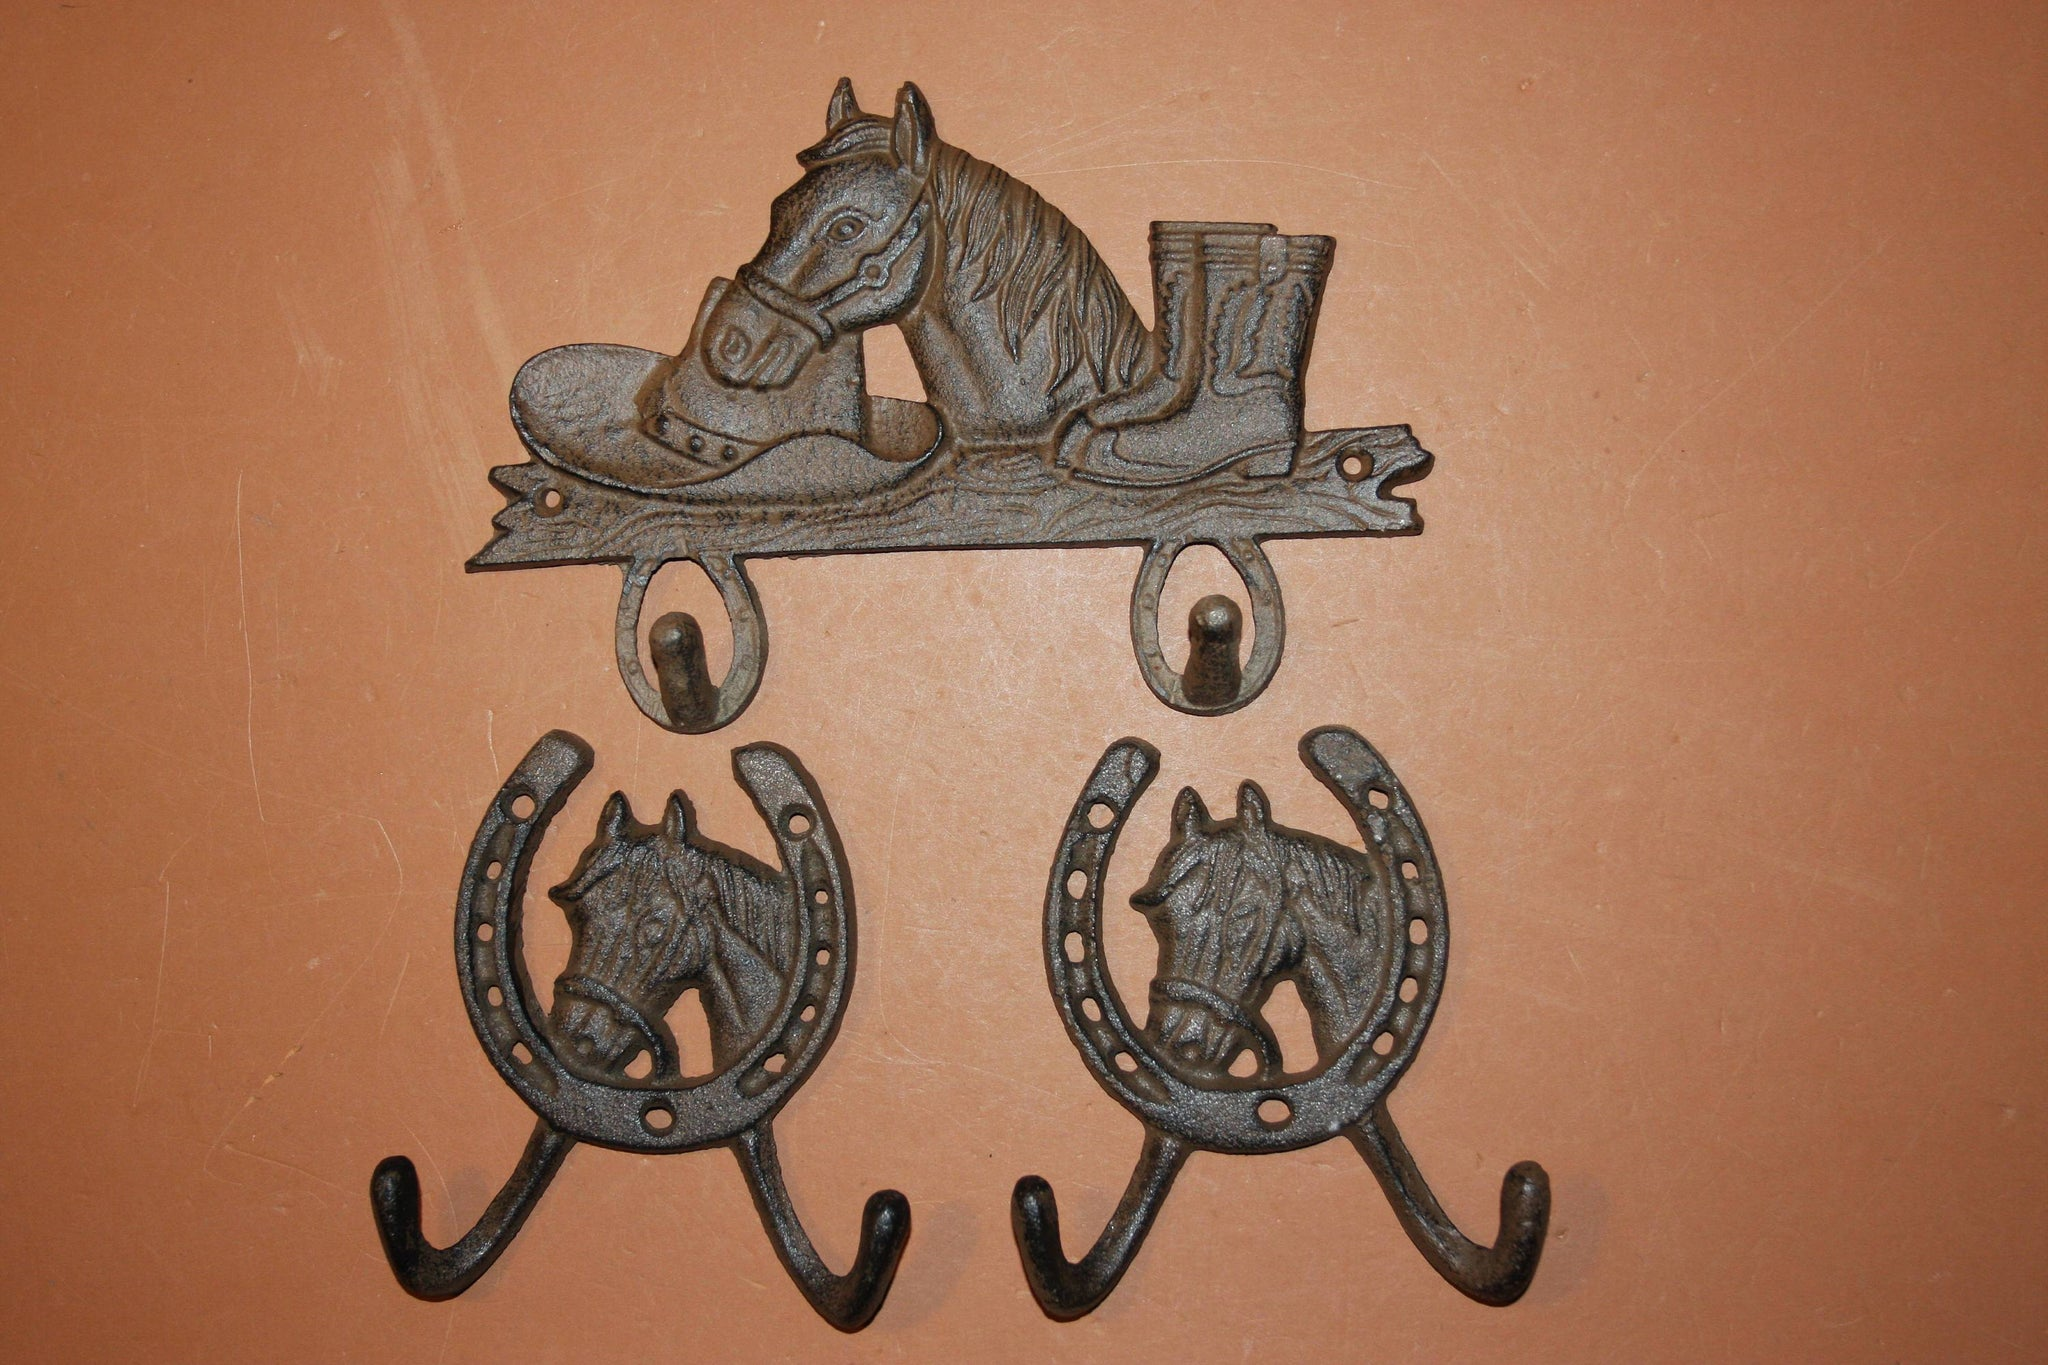 3) Rustic Country Western Bathroom Towel Hooks, Free Shipping, Solid Cast Iron Hand-cast Horse Design Bath Towel Hooks, Horseshoe